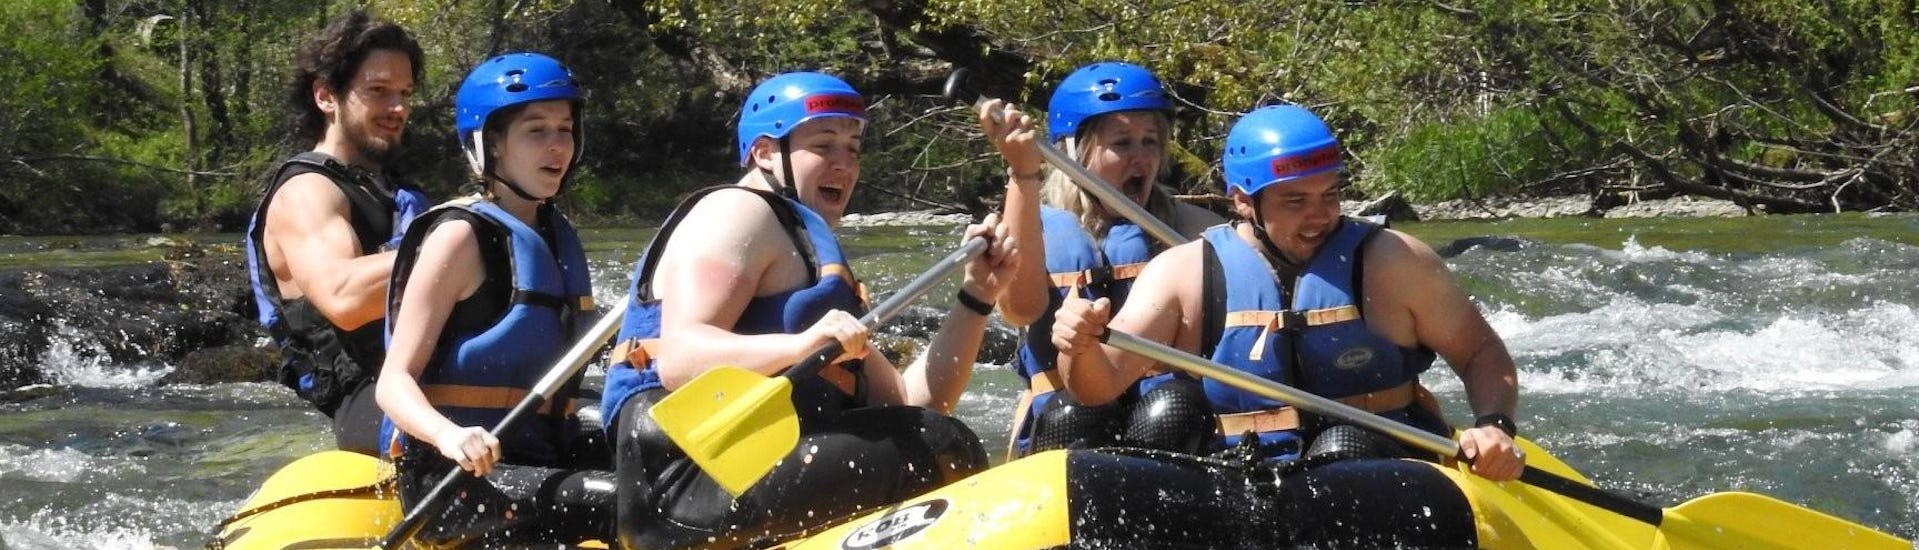 """Participants of the Rafting """"Bachelor Party"""" - Kupa organized by Rafting Gorski Tok are having fun on the river"""